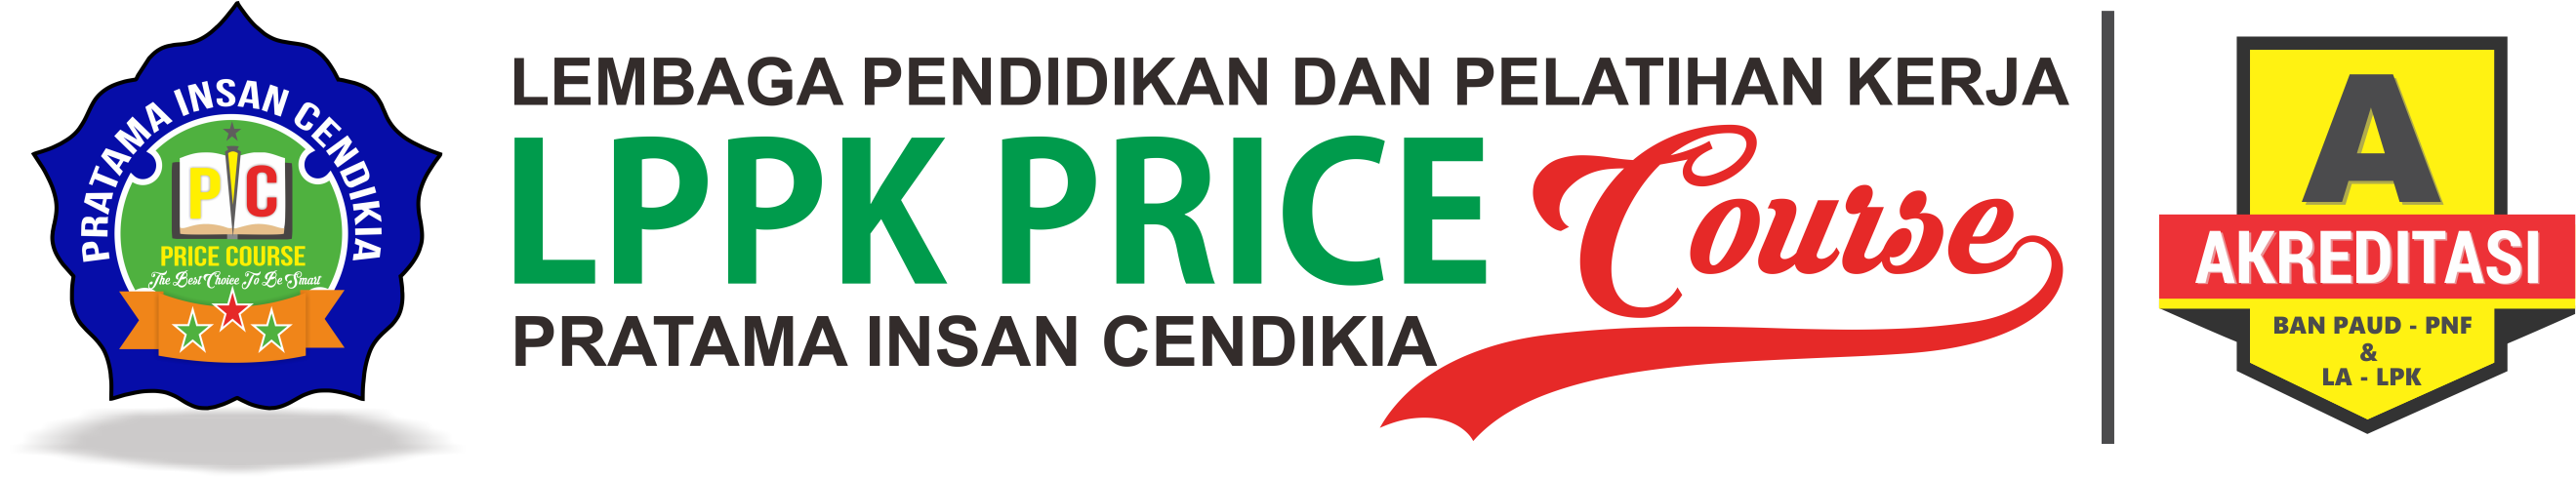 PRICE Course